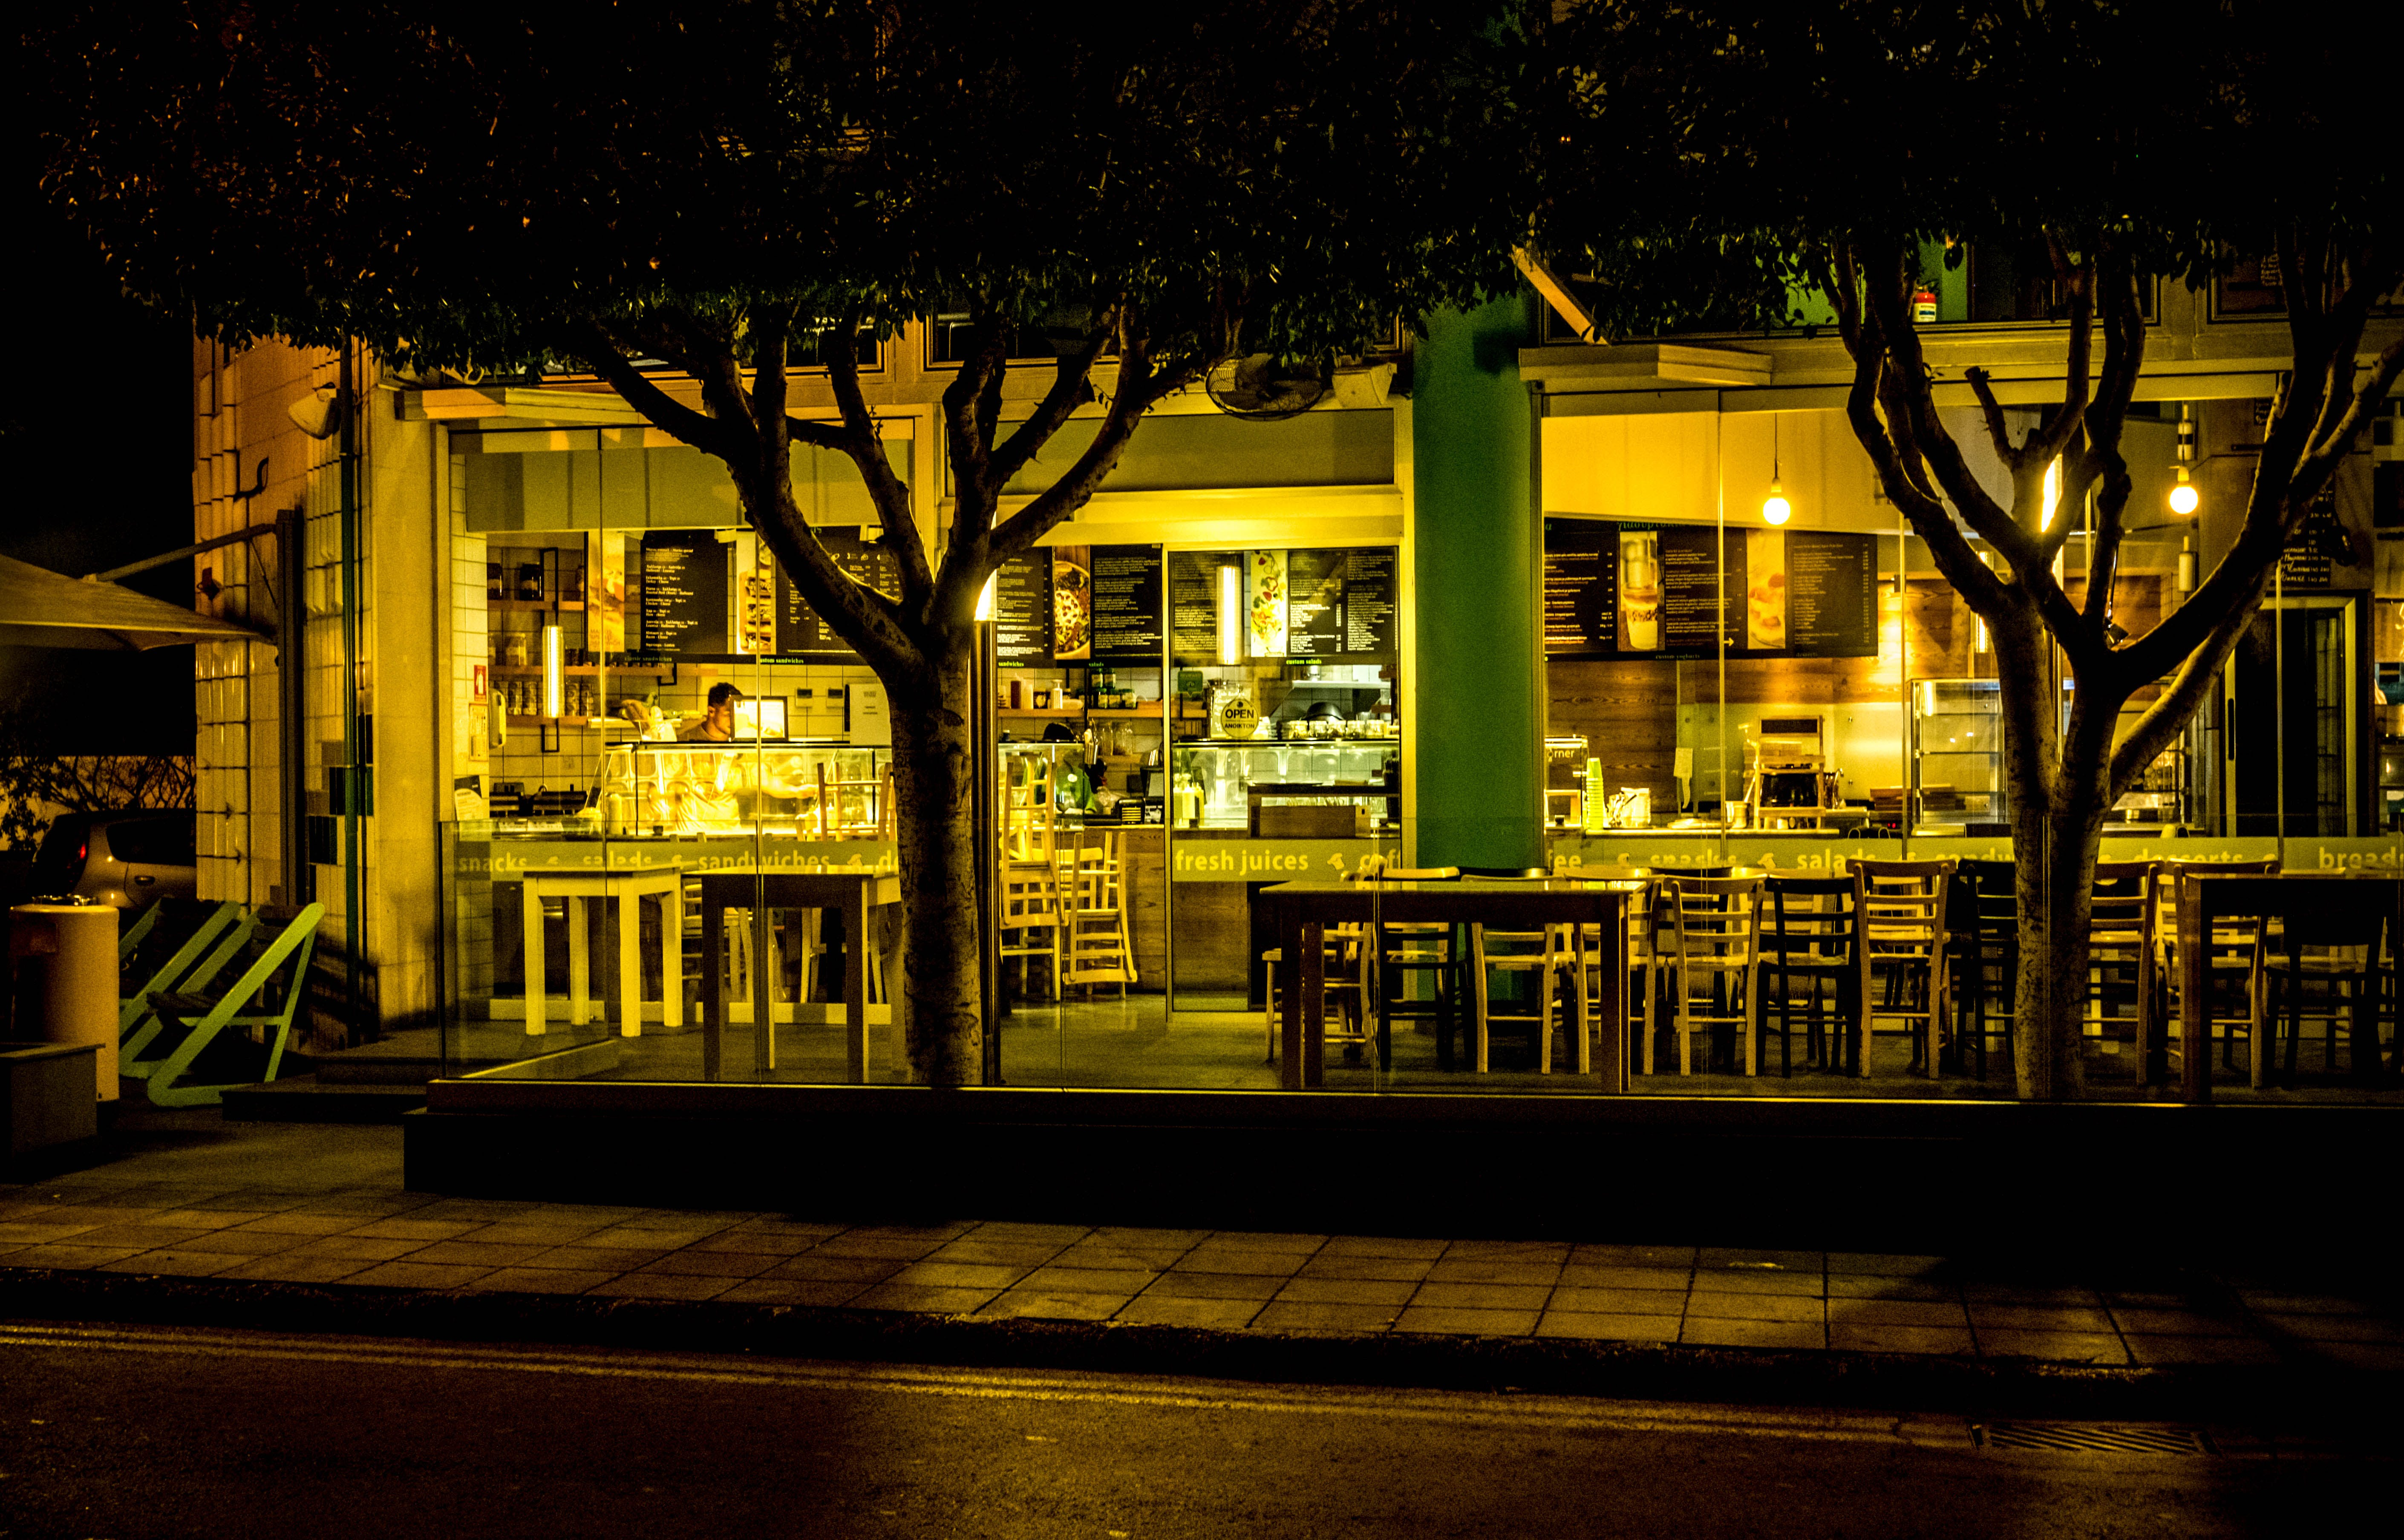 Store Front at Nighttime